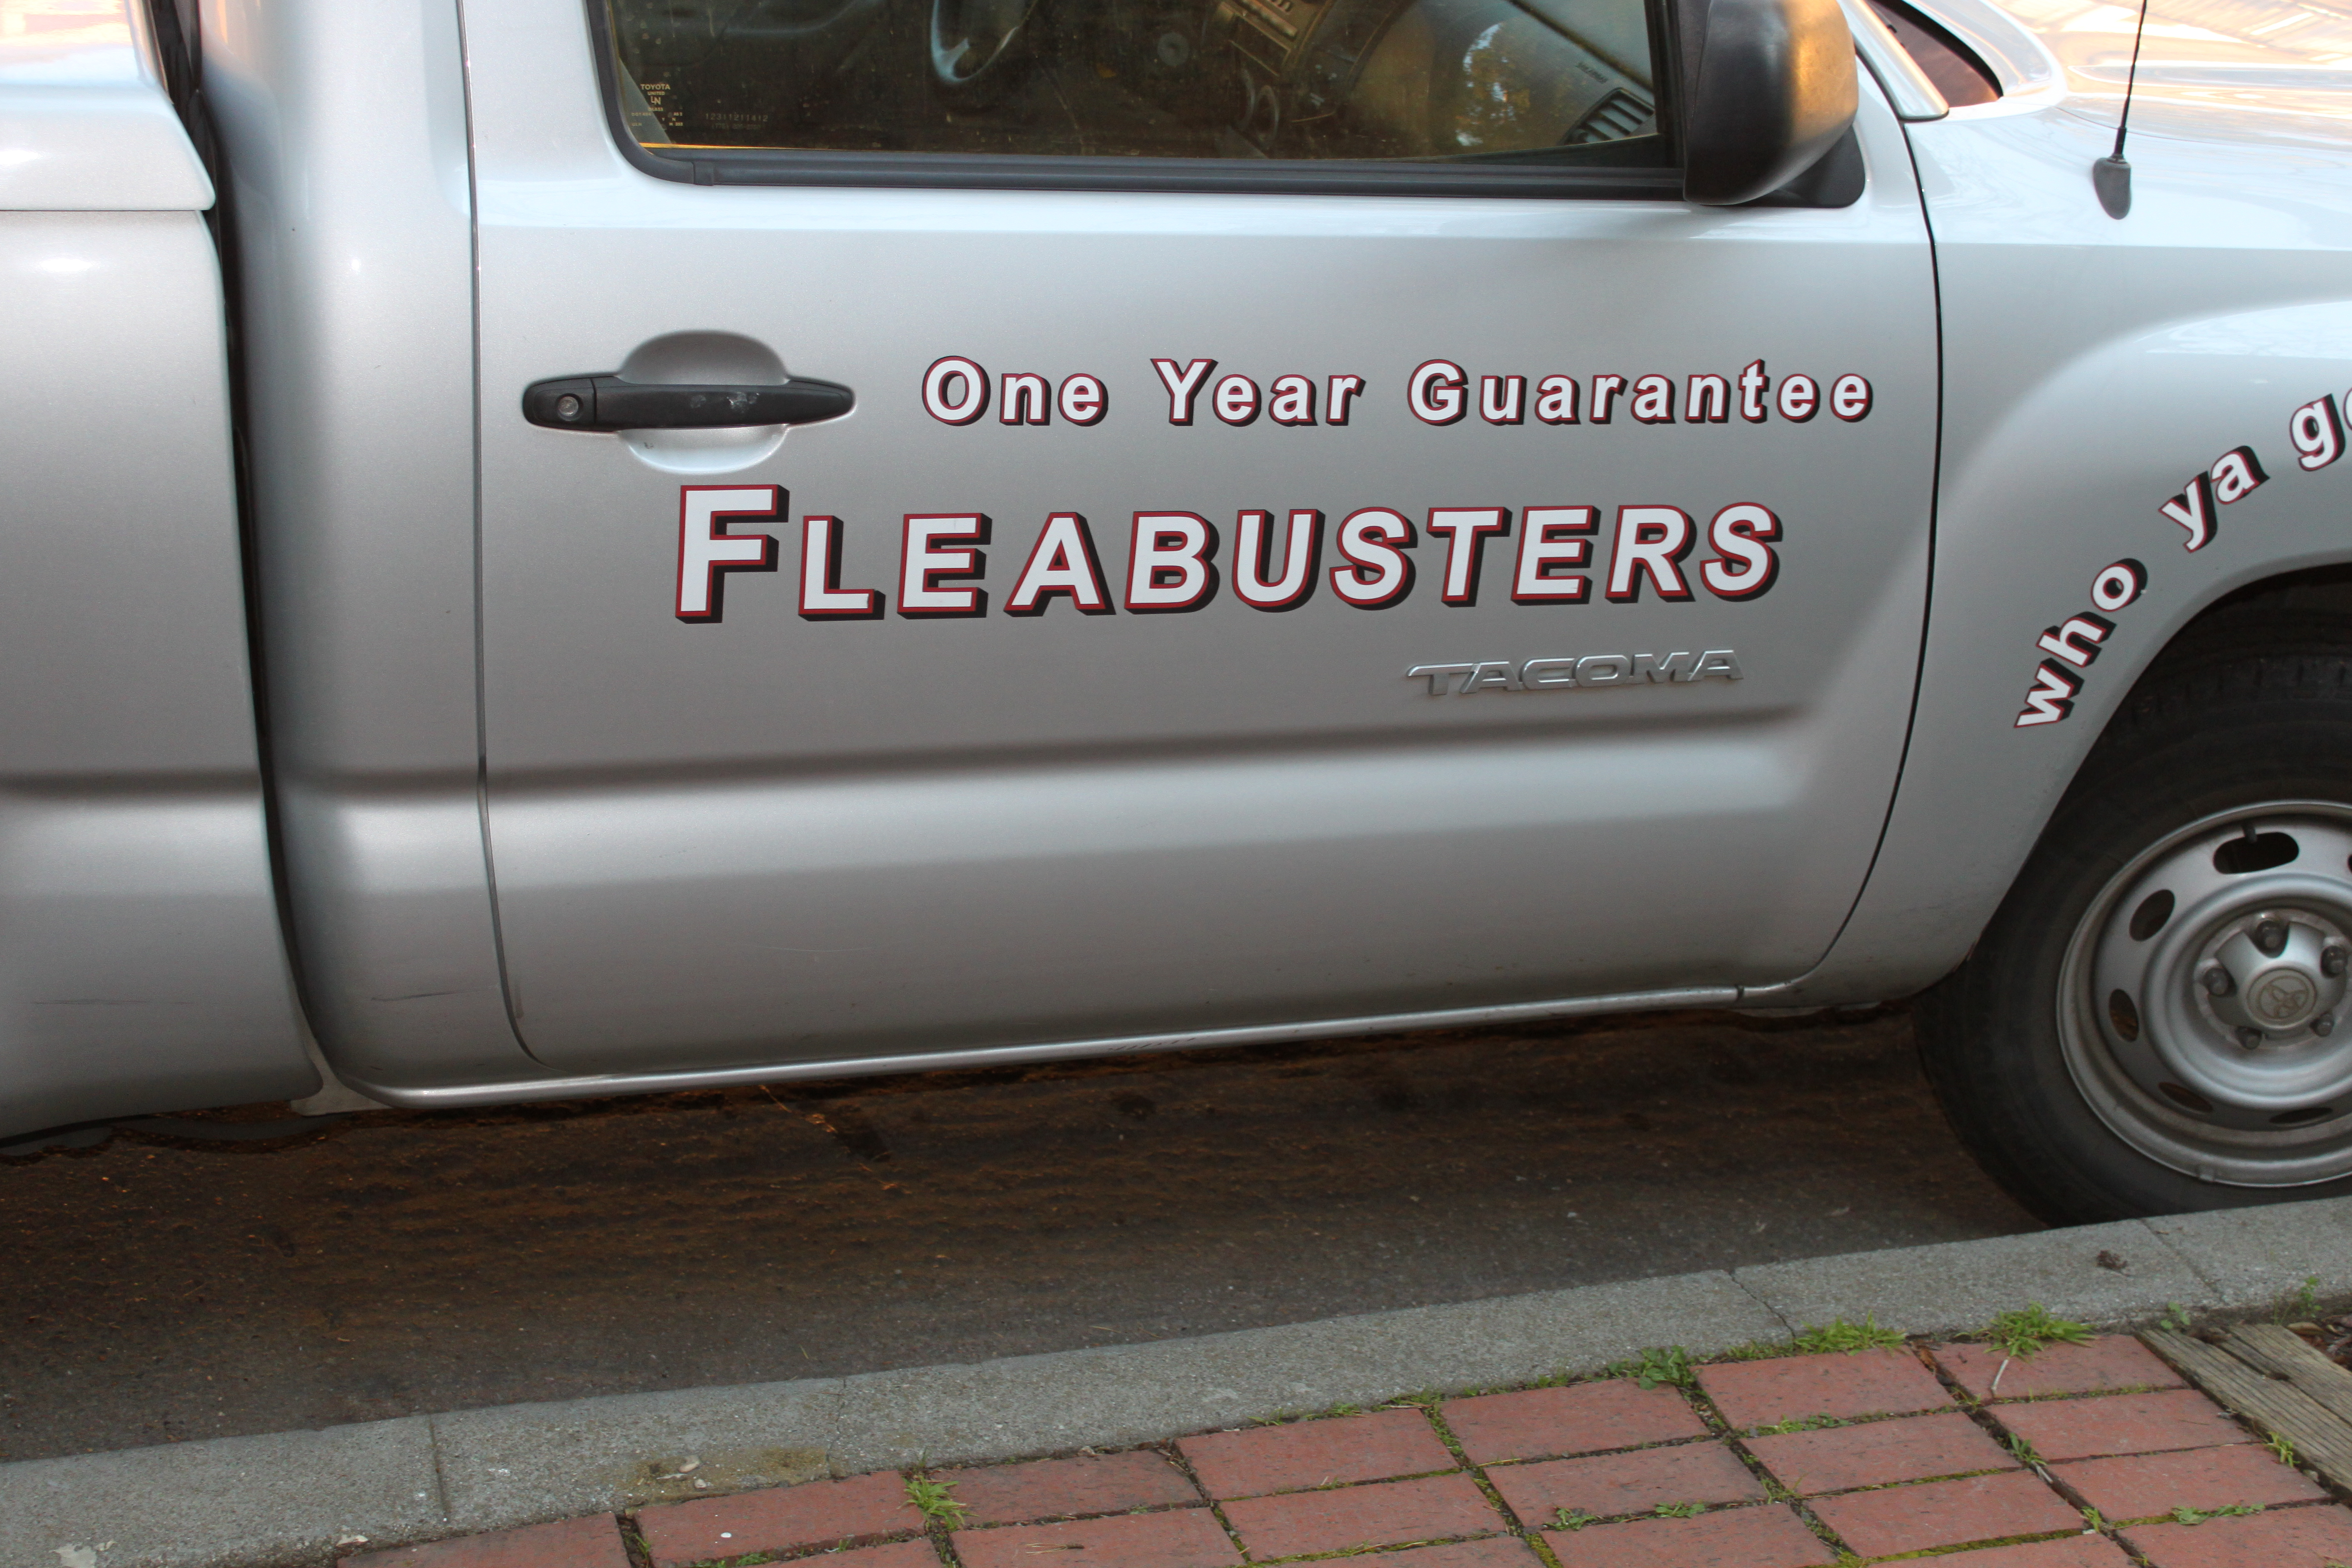 I'm so glad we called Fleabusters!